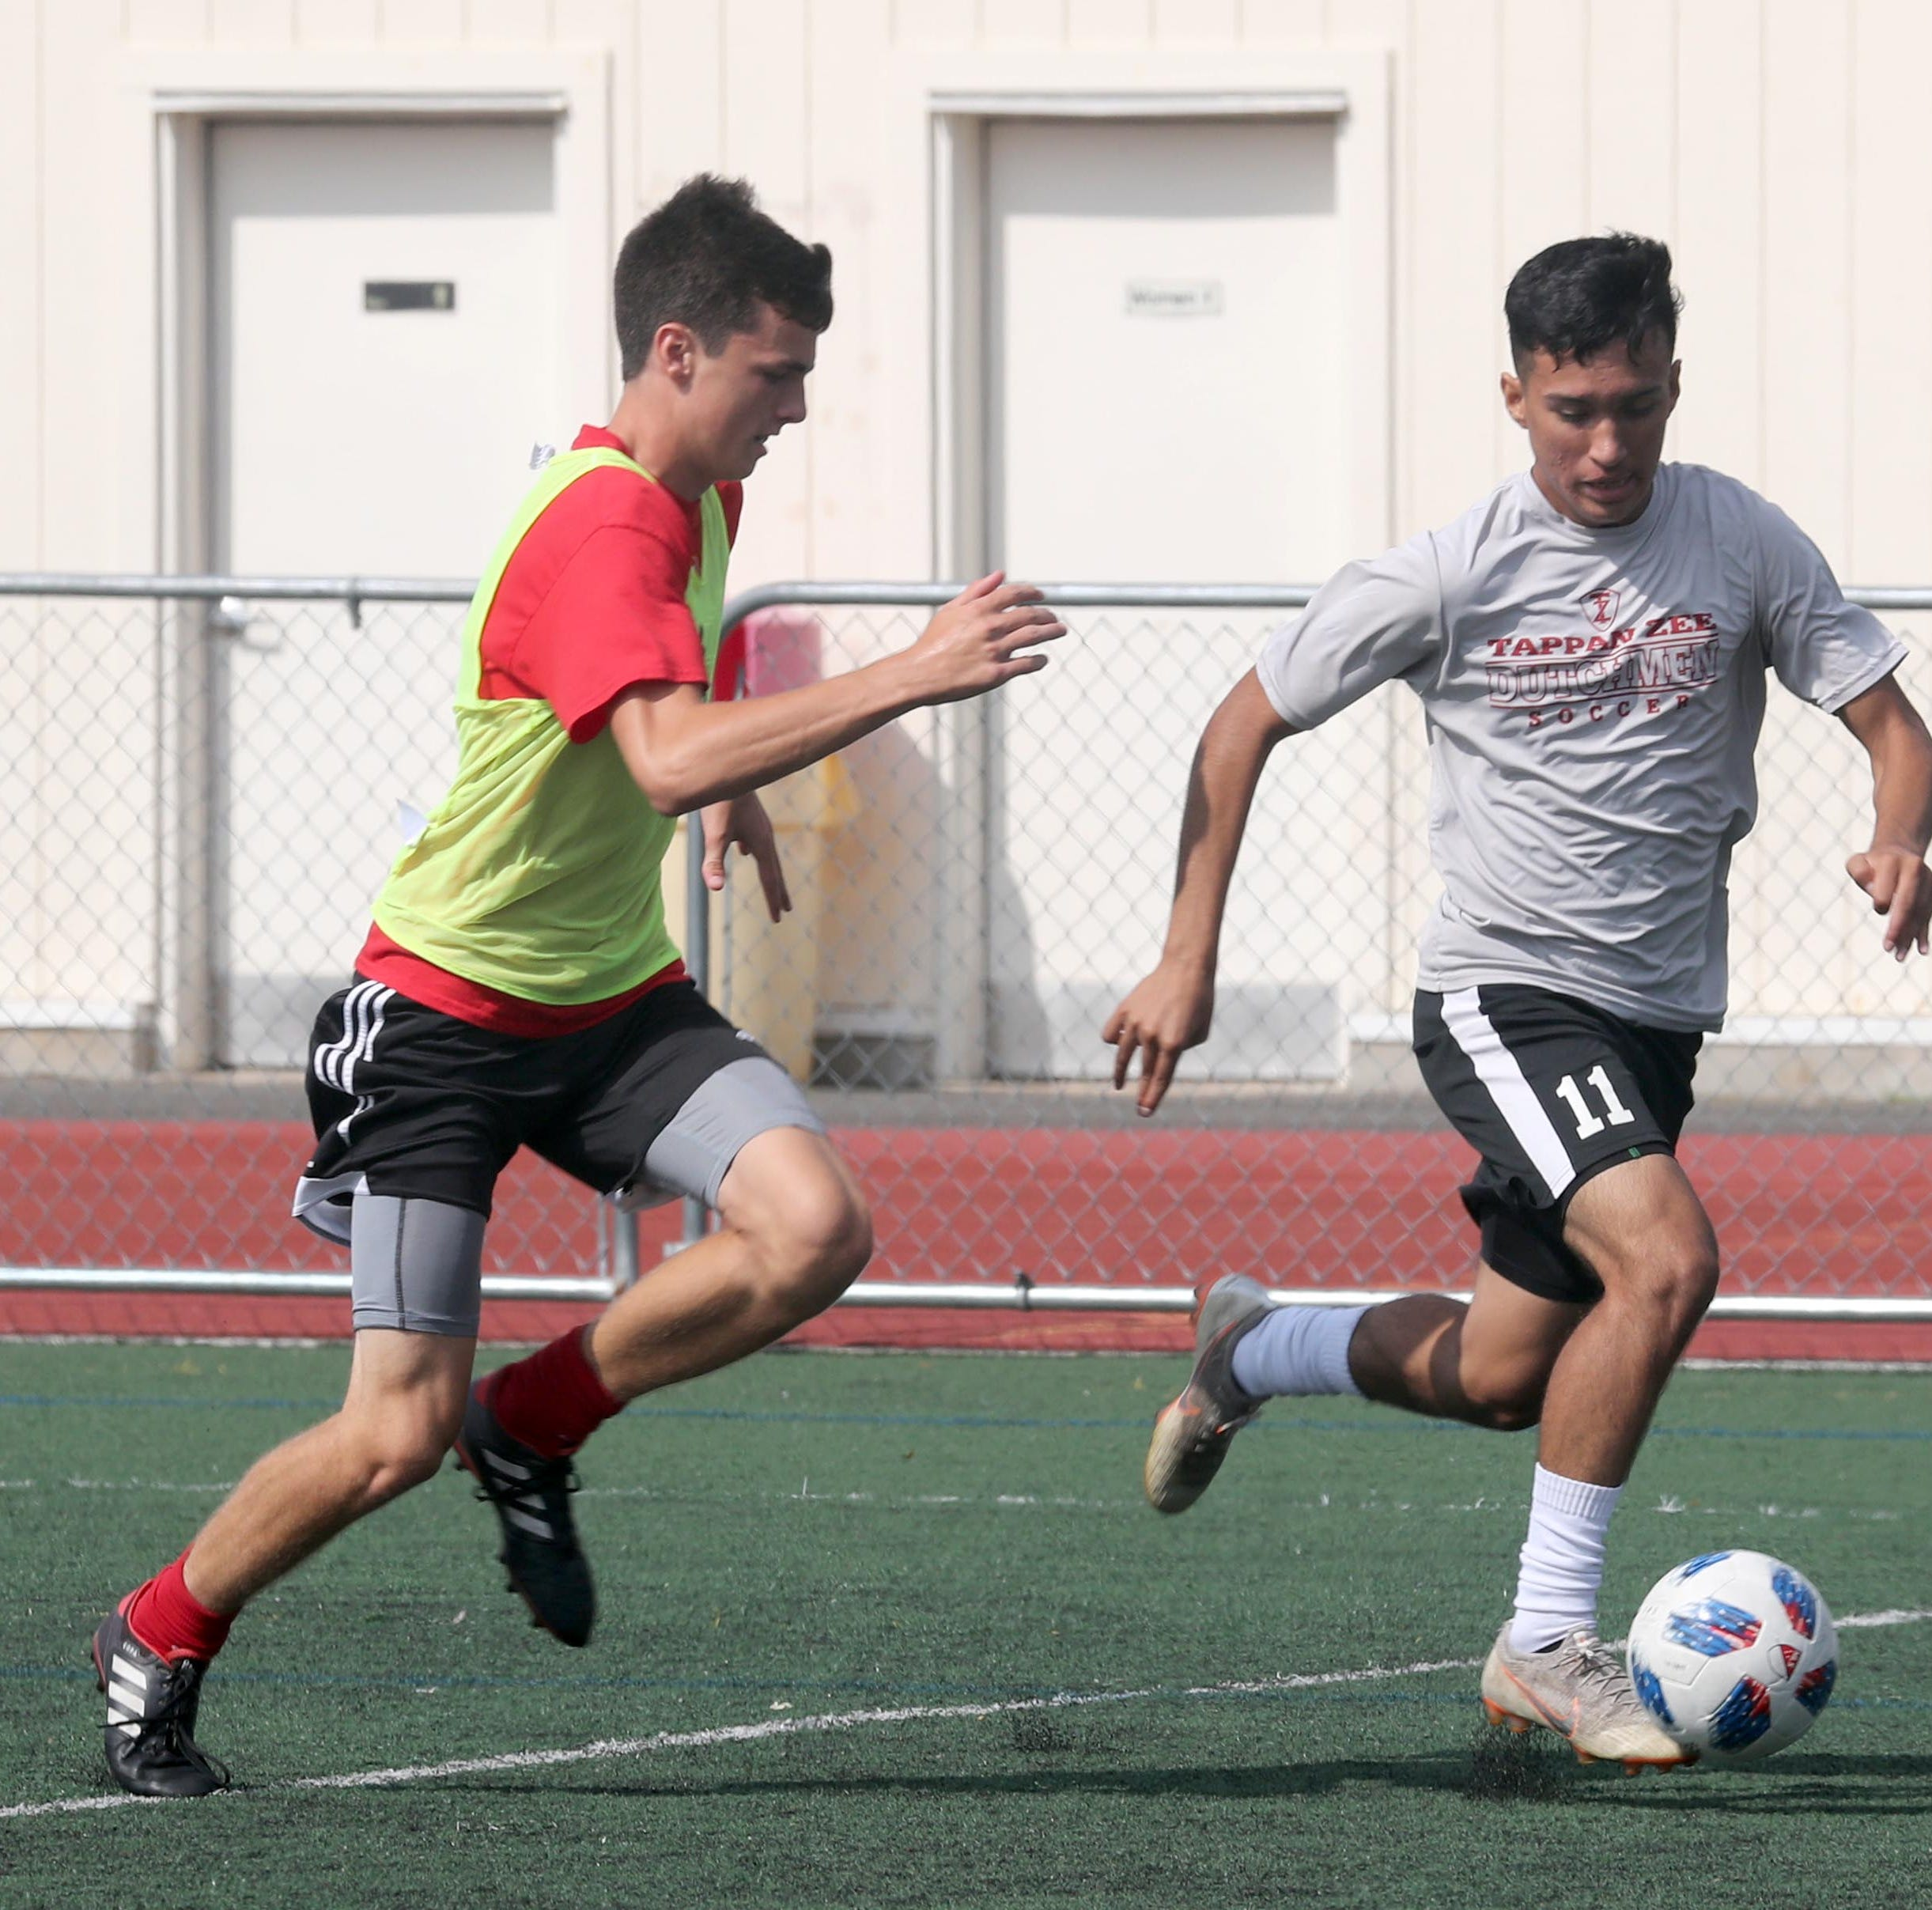 Boys soccer: Rockland County features elite goal-scorers heading into 2018 season